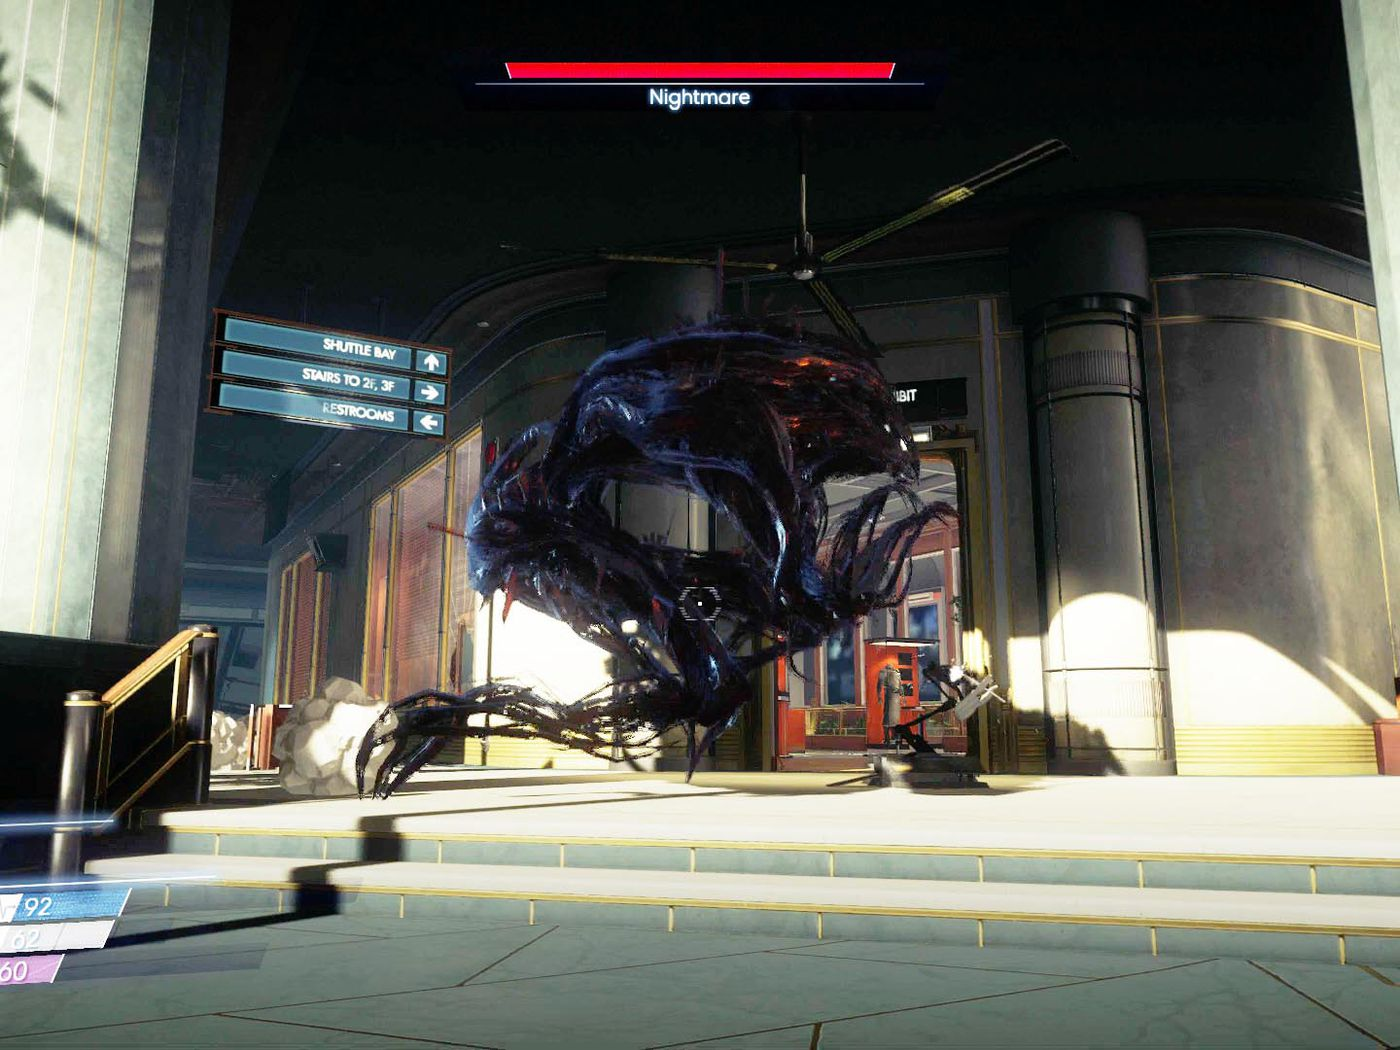 Prey guide: Finding, fighting and killing the nightmare - Polygon